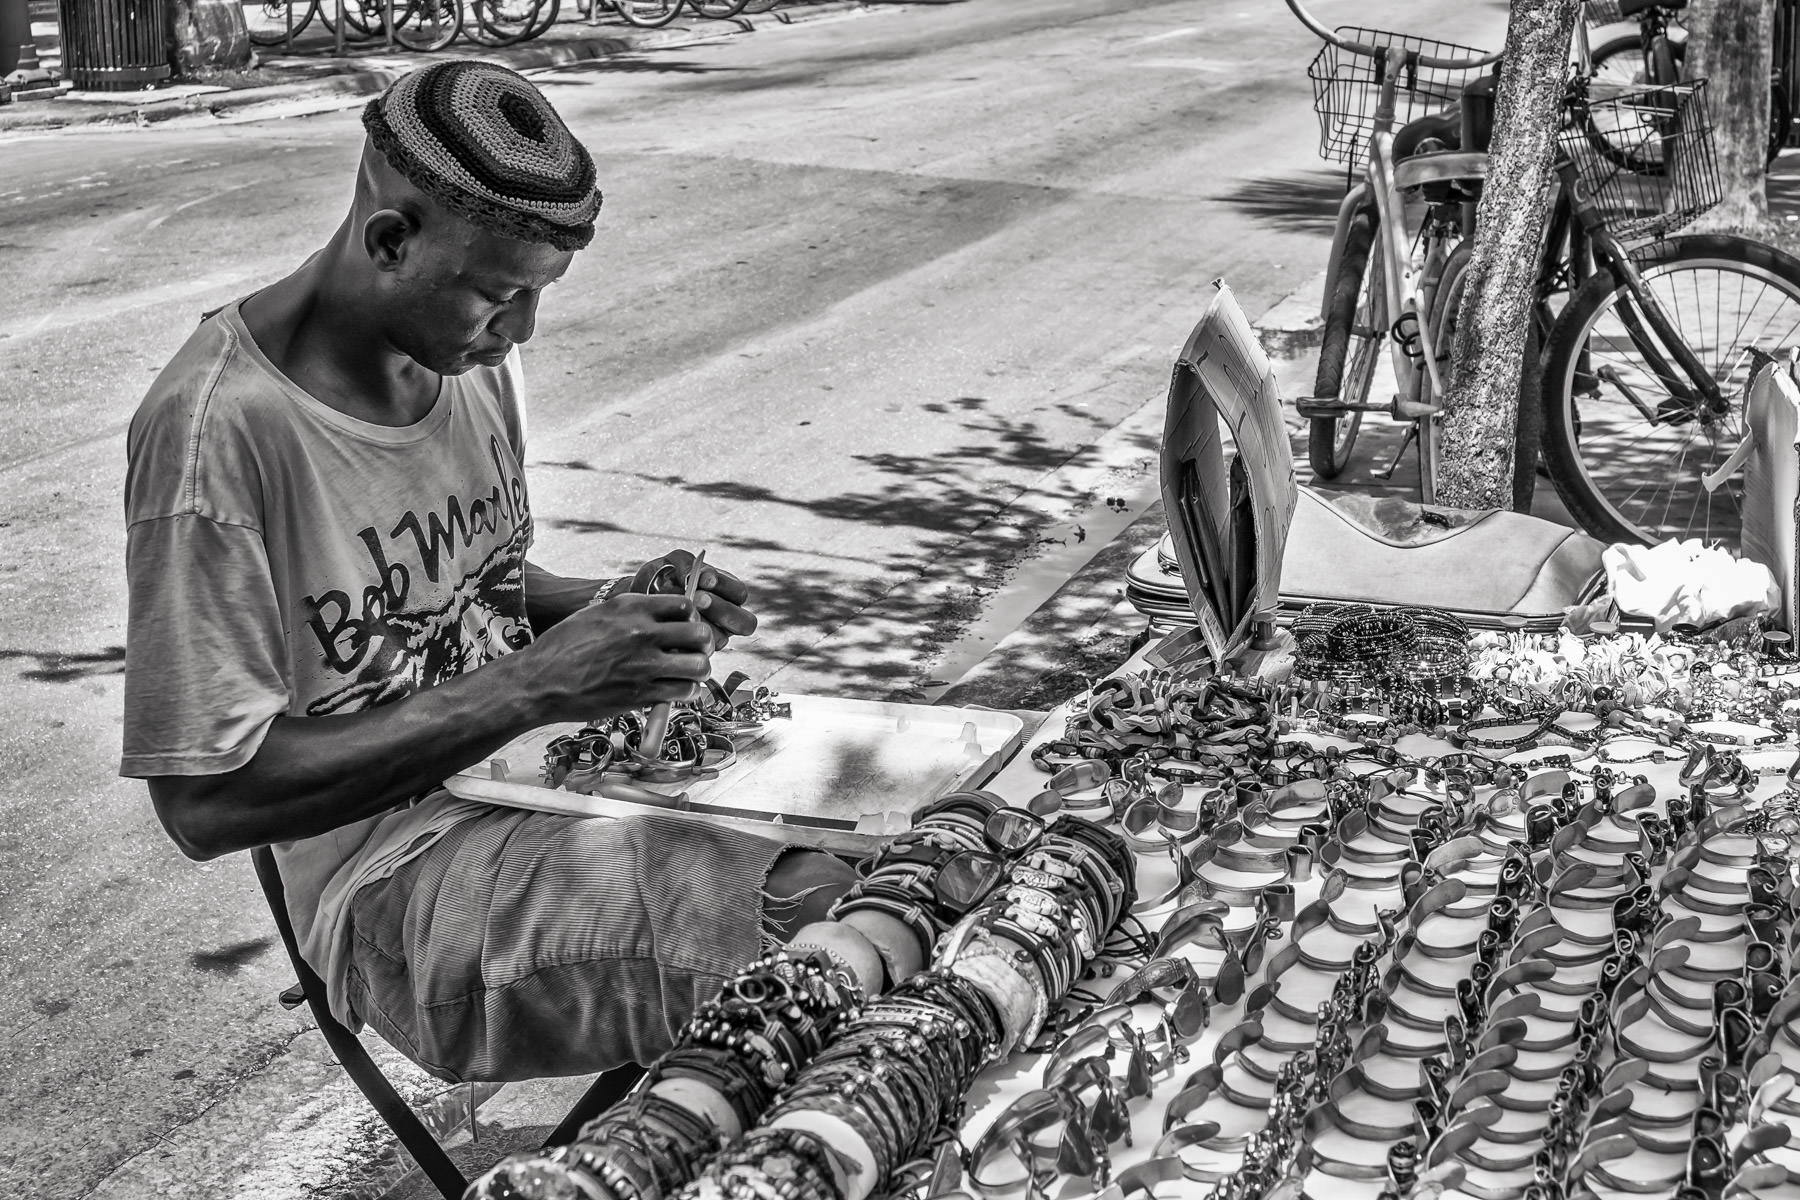 A street vendor crafts and sells bracelets in Key West, Florida.